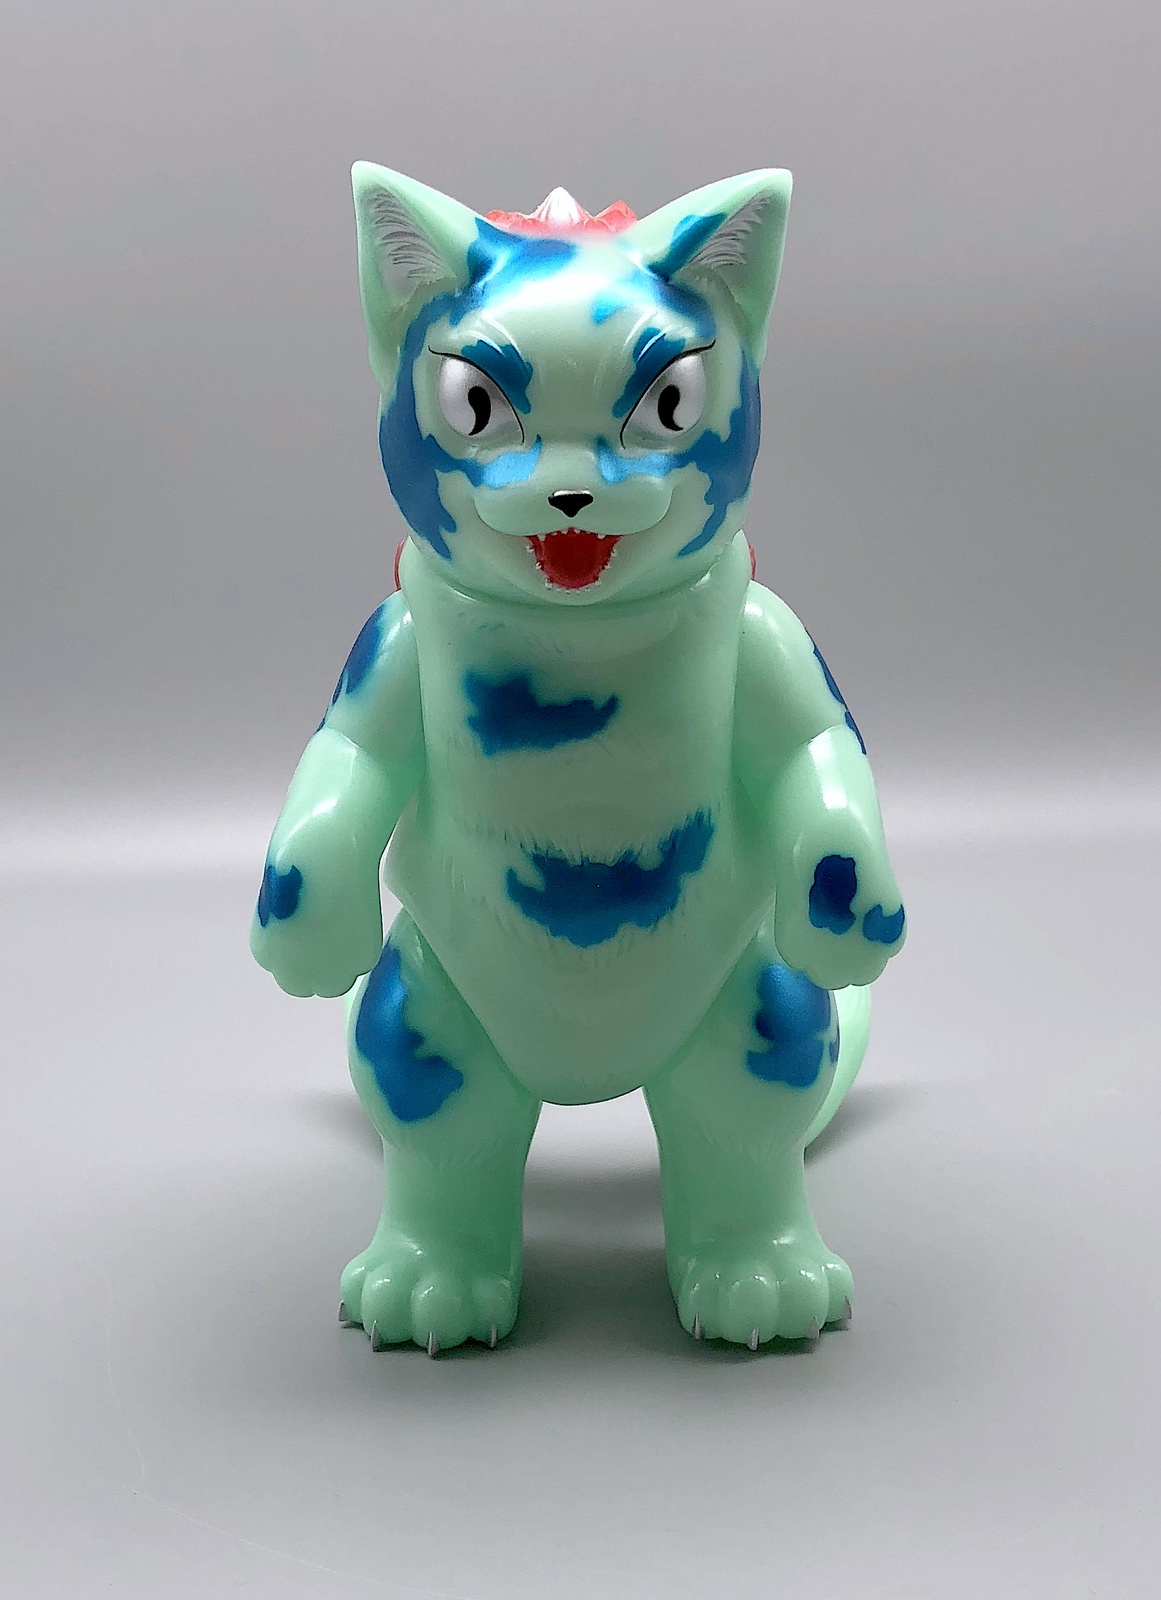 Konatsu GID (Glow in the Dark) Daioh Negora